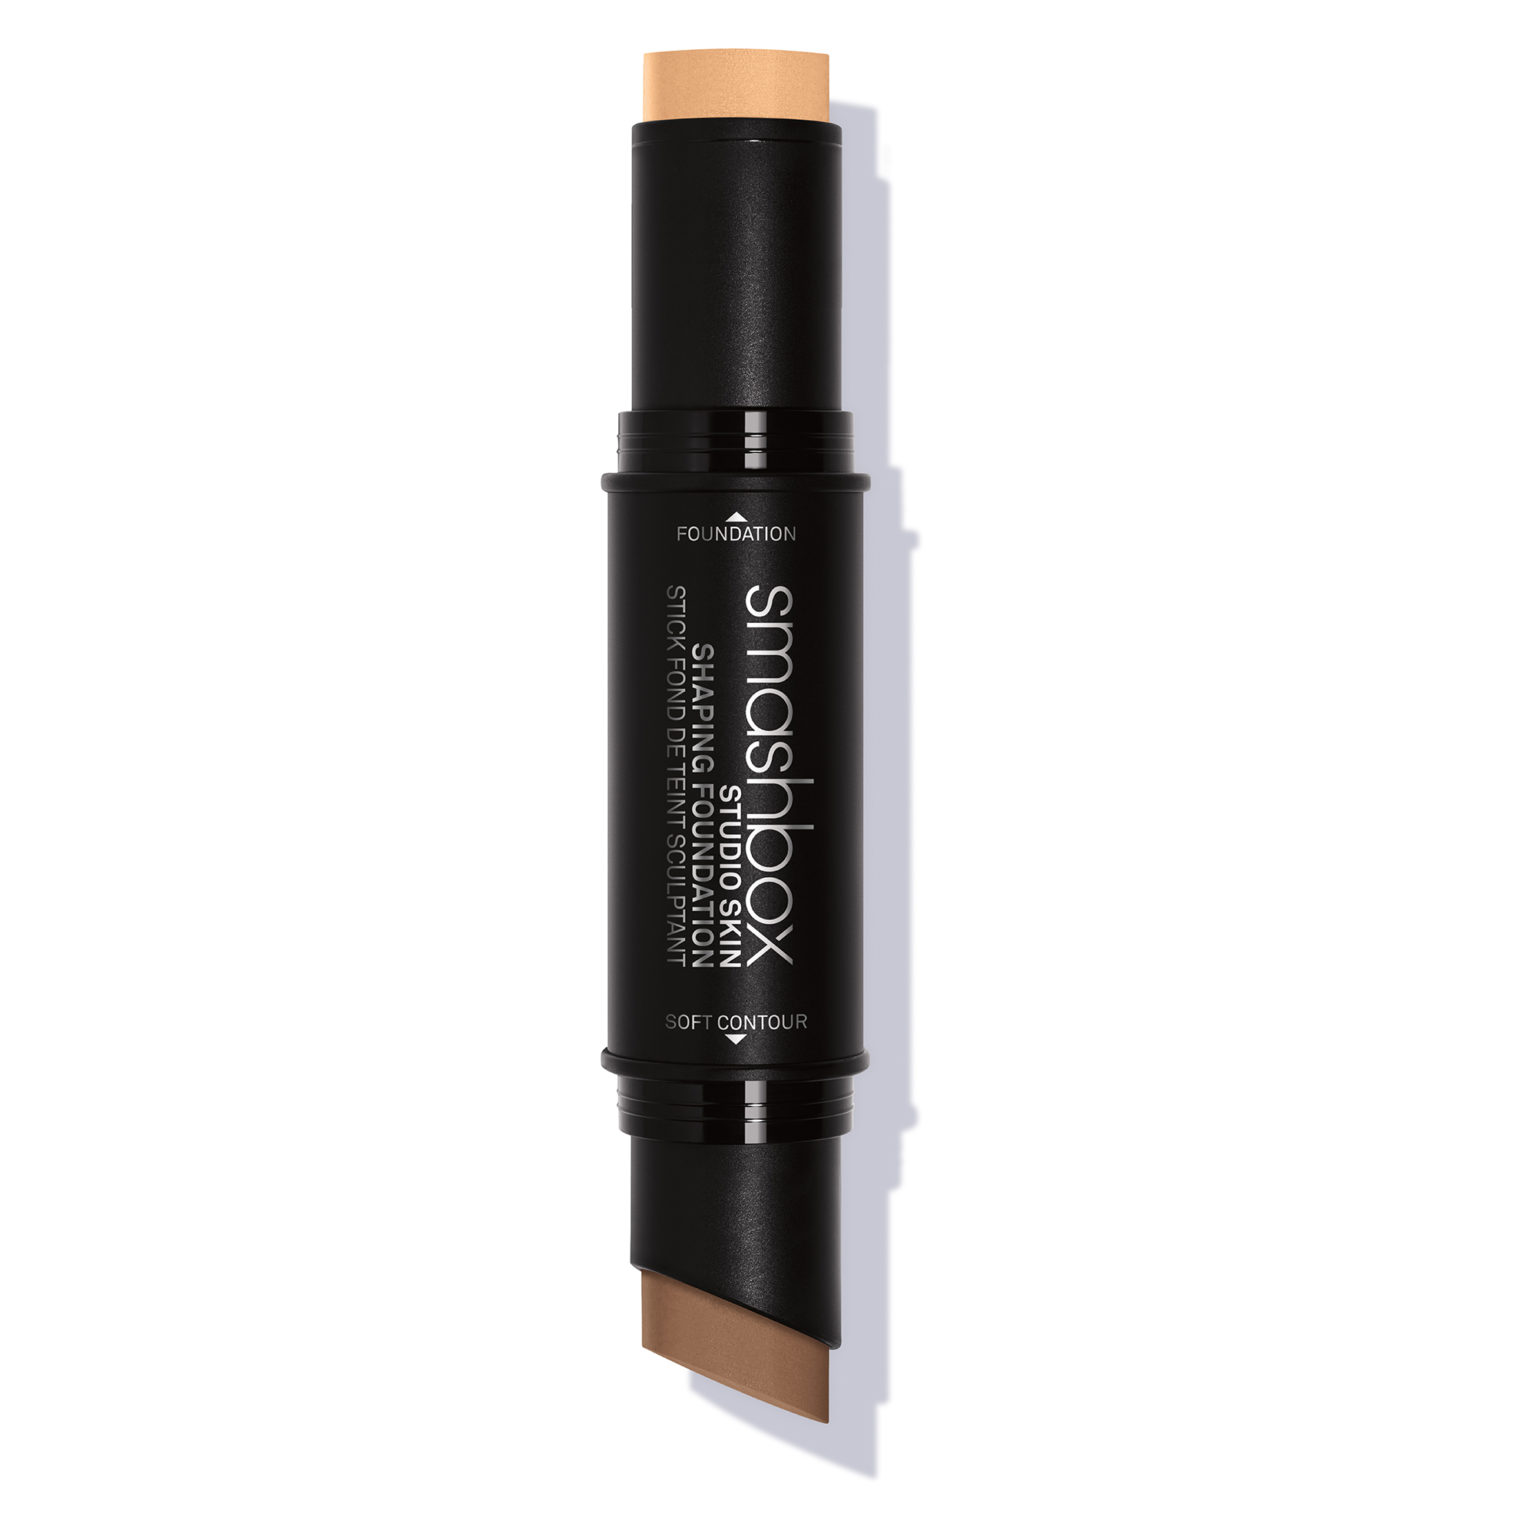 Z8 BASE EN BARRAS STUDIO SKIN SHAPING FOUNDATION FOUNDATION 2.4 + SOFT CONTOUR